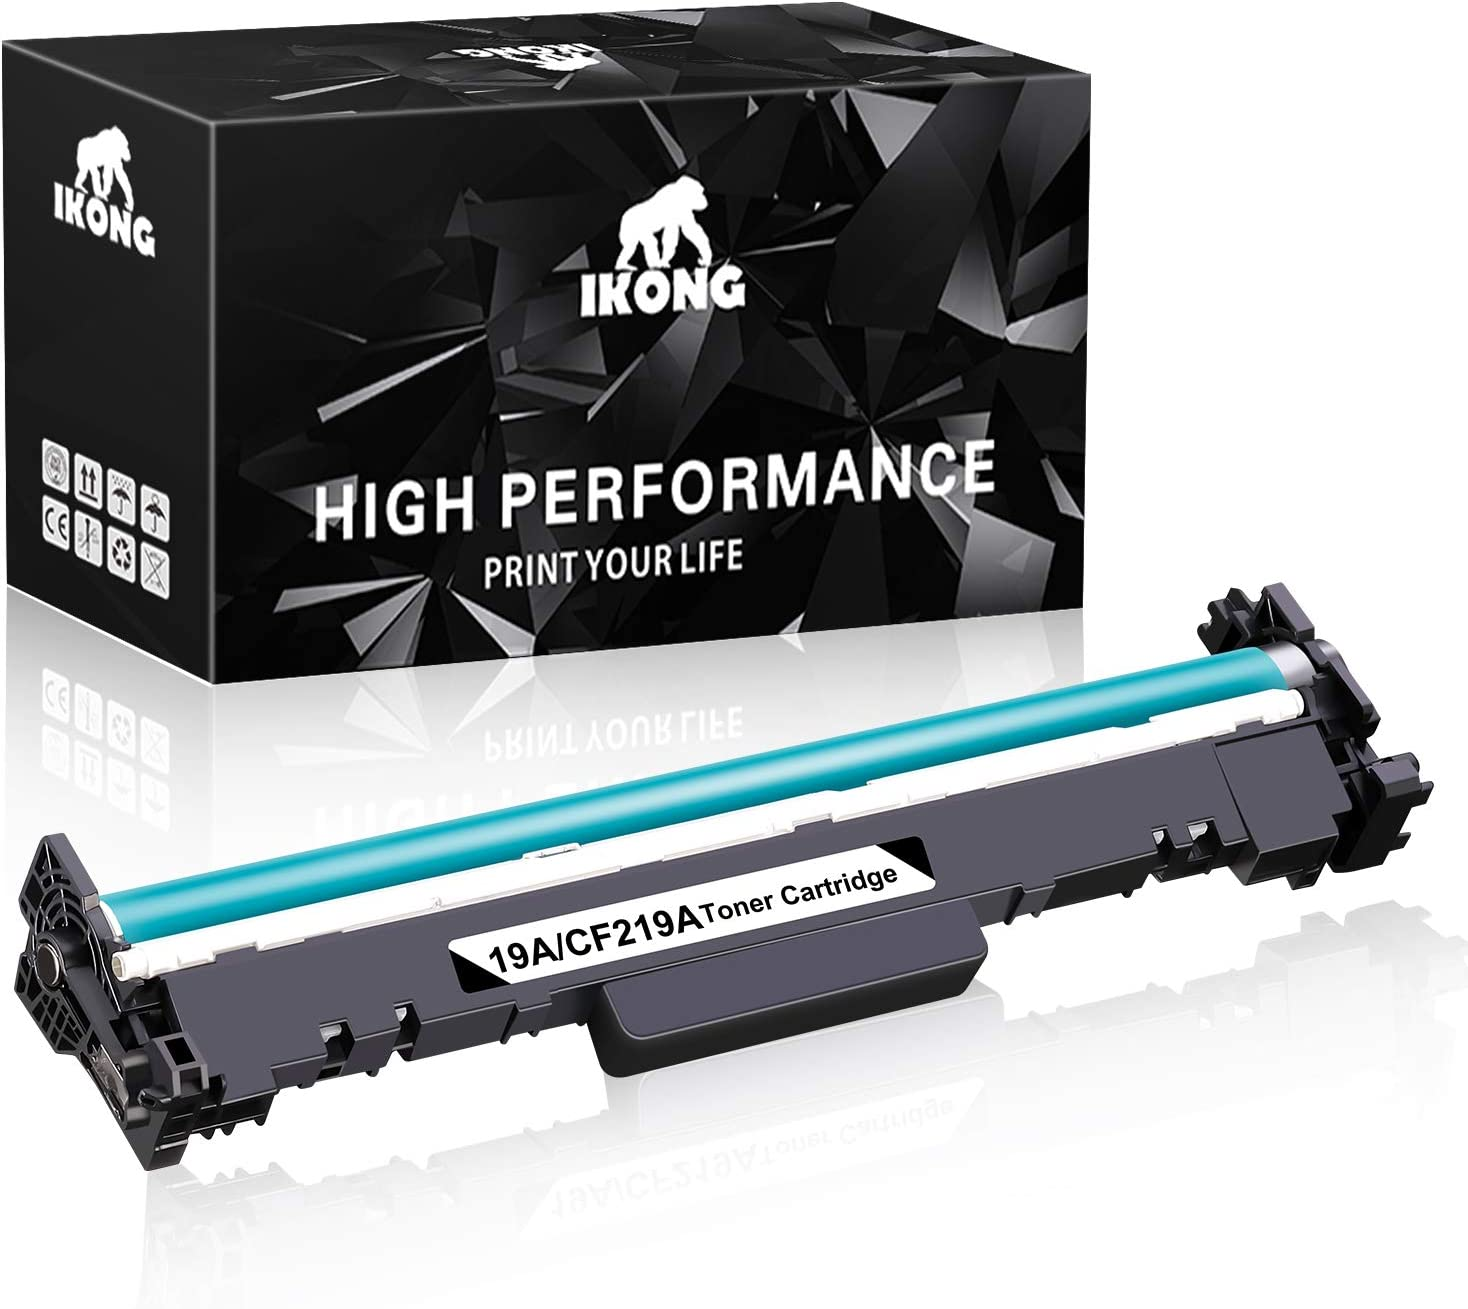 IKONG Compatible Replacement for HP CF219A 19A Toner Cartridge Black Drum(fit in 17A CF217A Toner) use with Laserjet Pro M102w M130nw M130fw M130fn M102a M130a MFP M130 M102 Printer